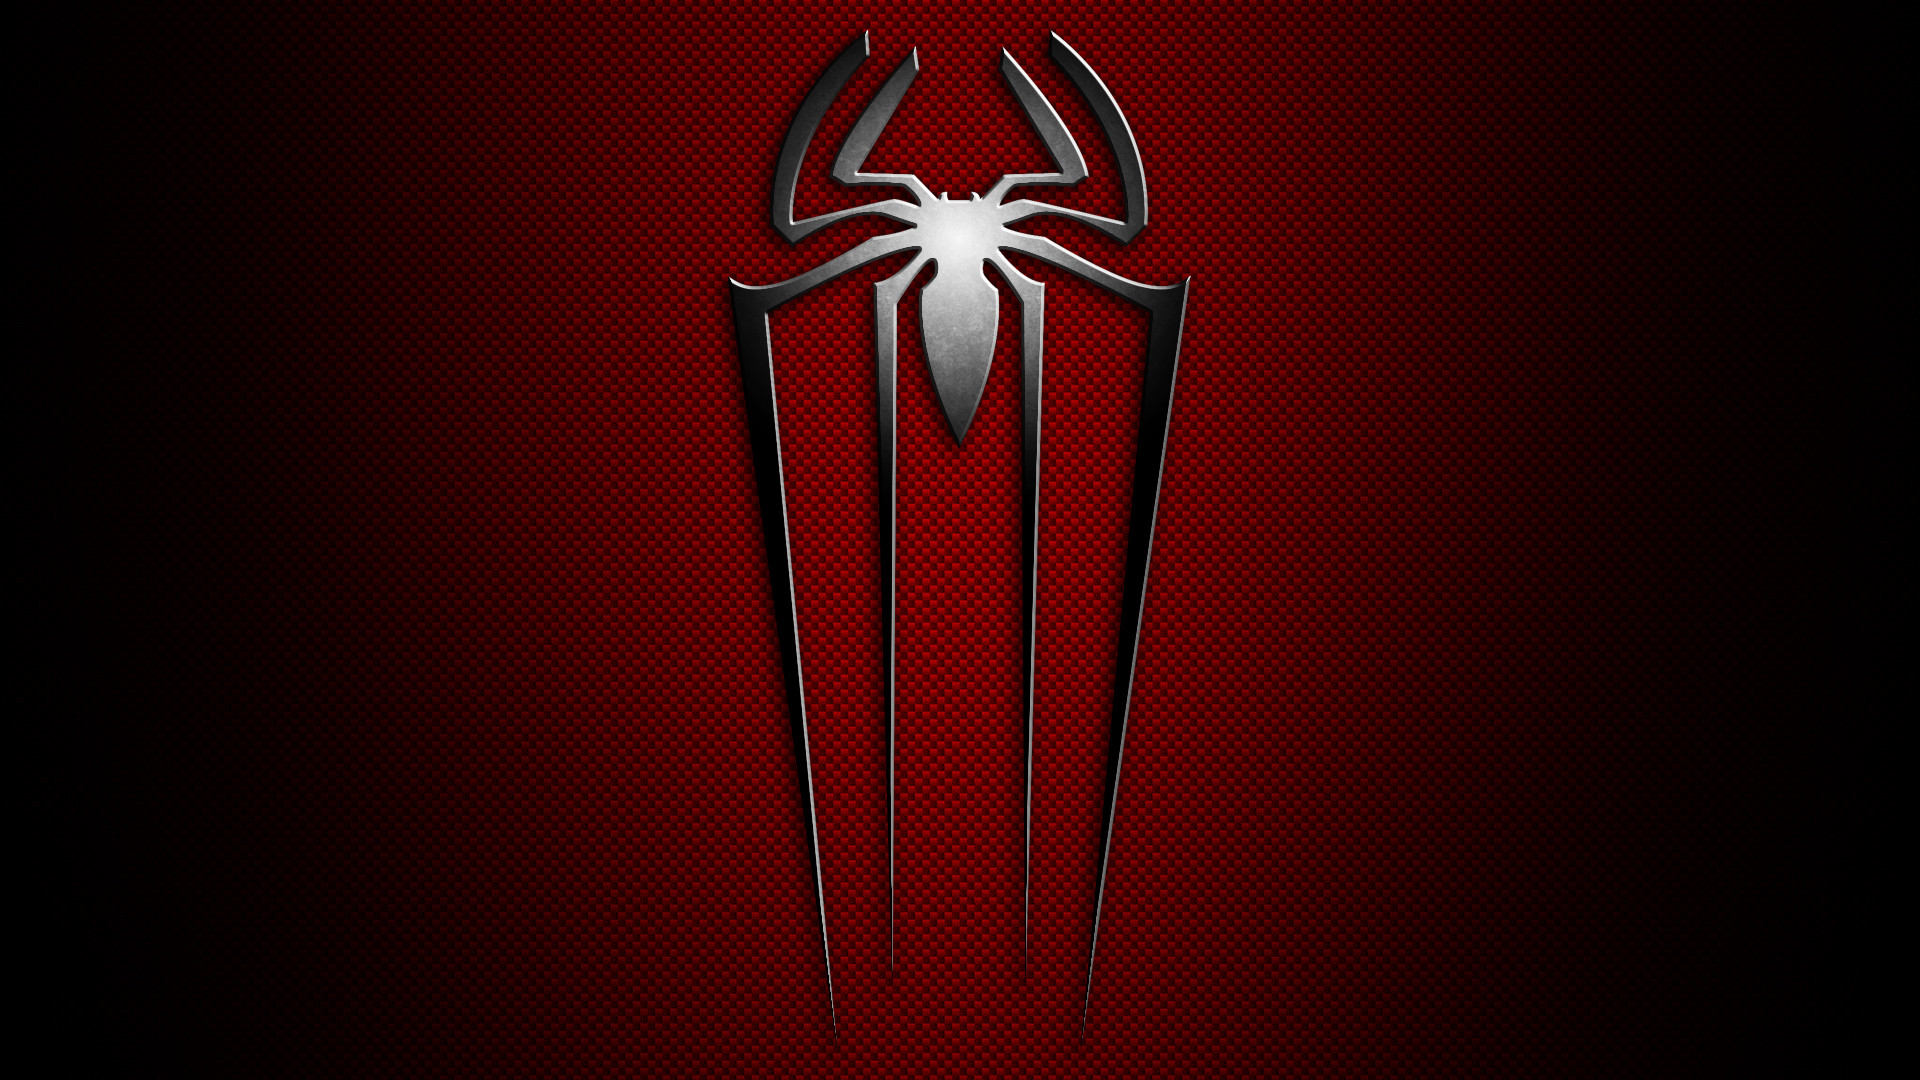 spiderman logo wallpaper wallpapersafari